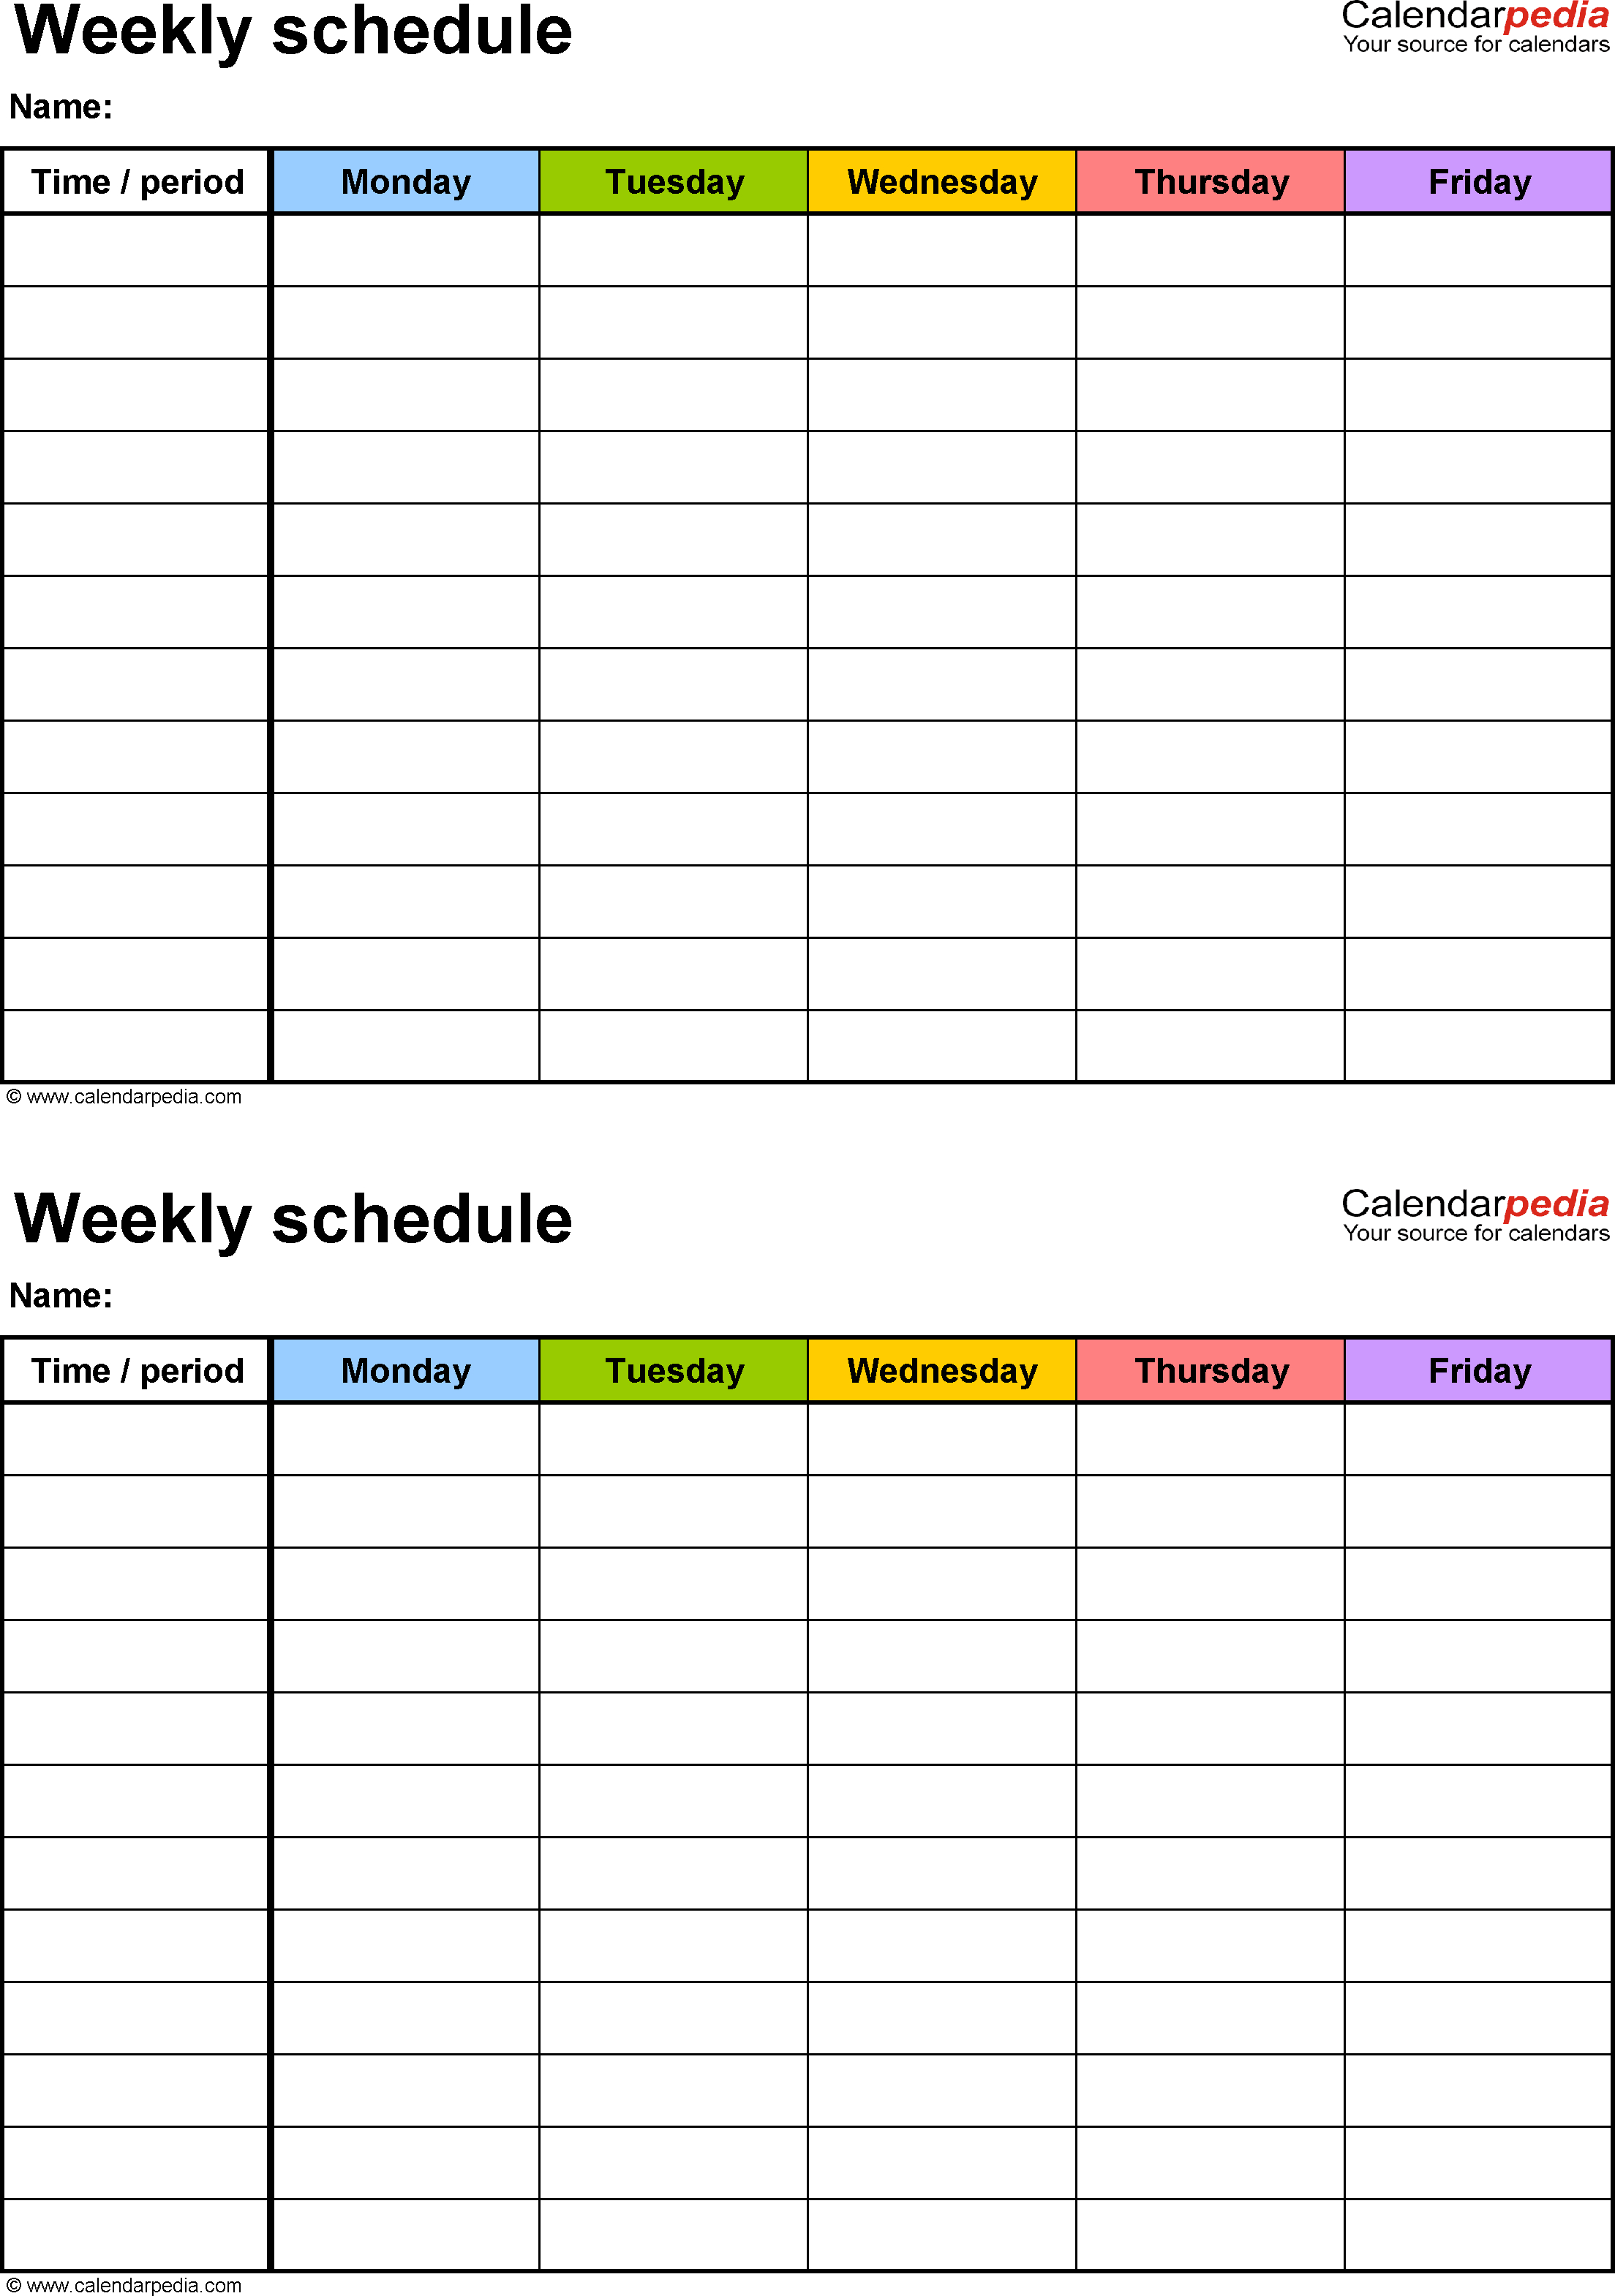 Free Weekly Schedule Templates For Word  18 Templates for Camp Schedule Template